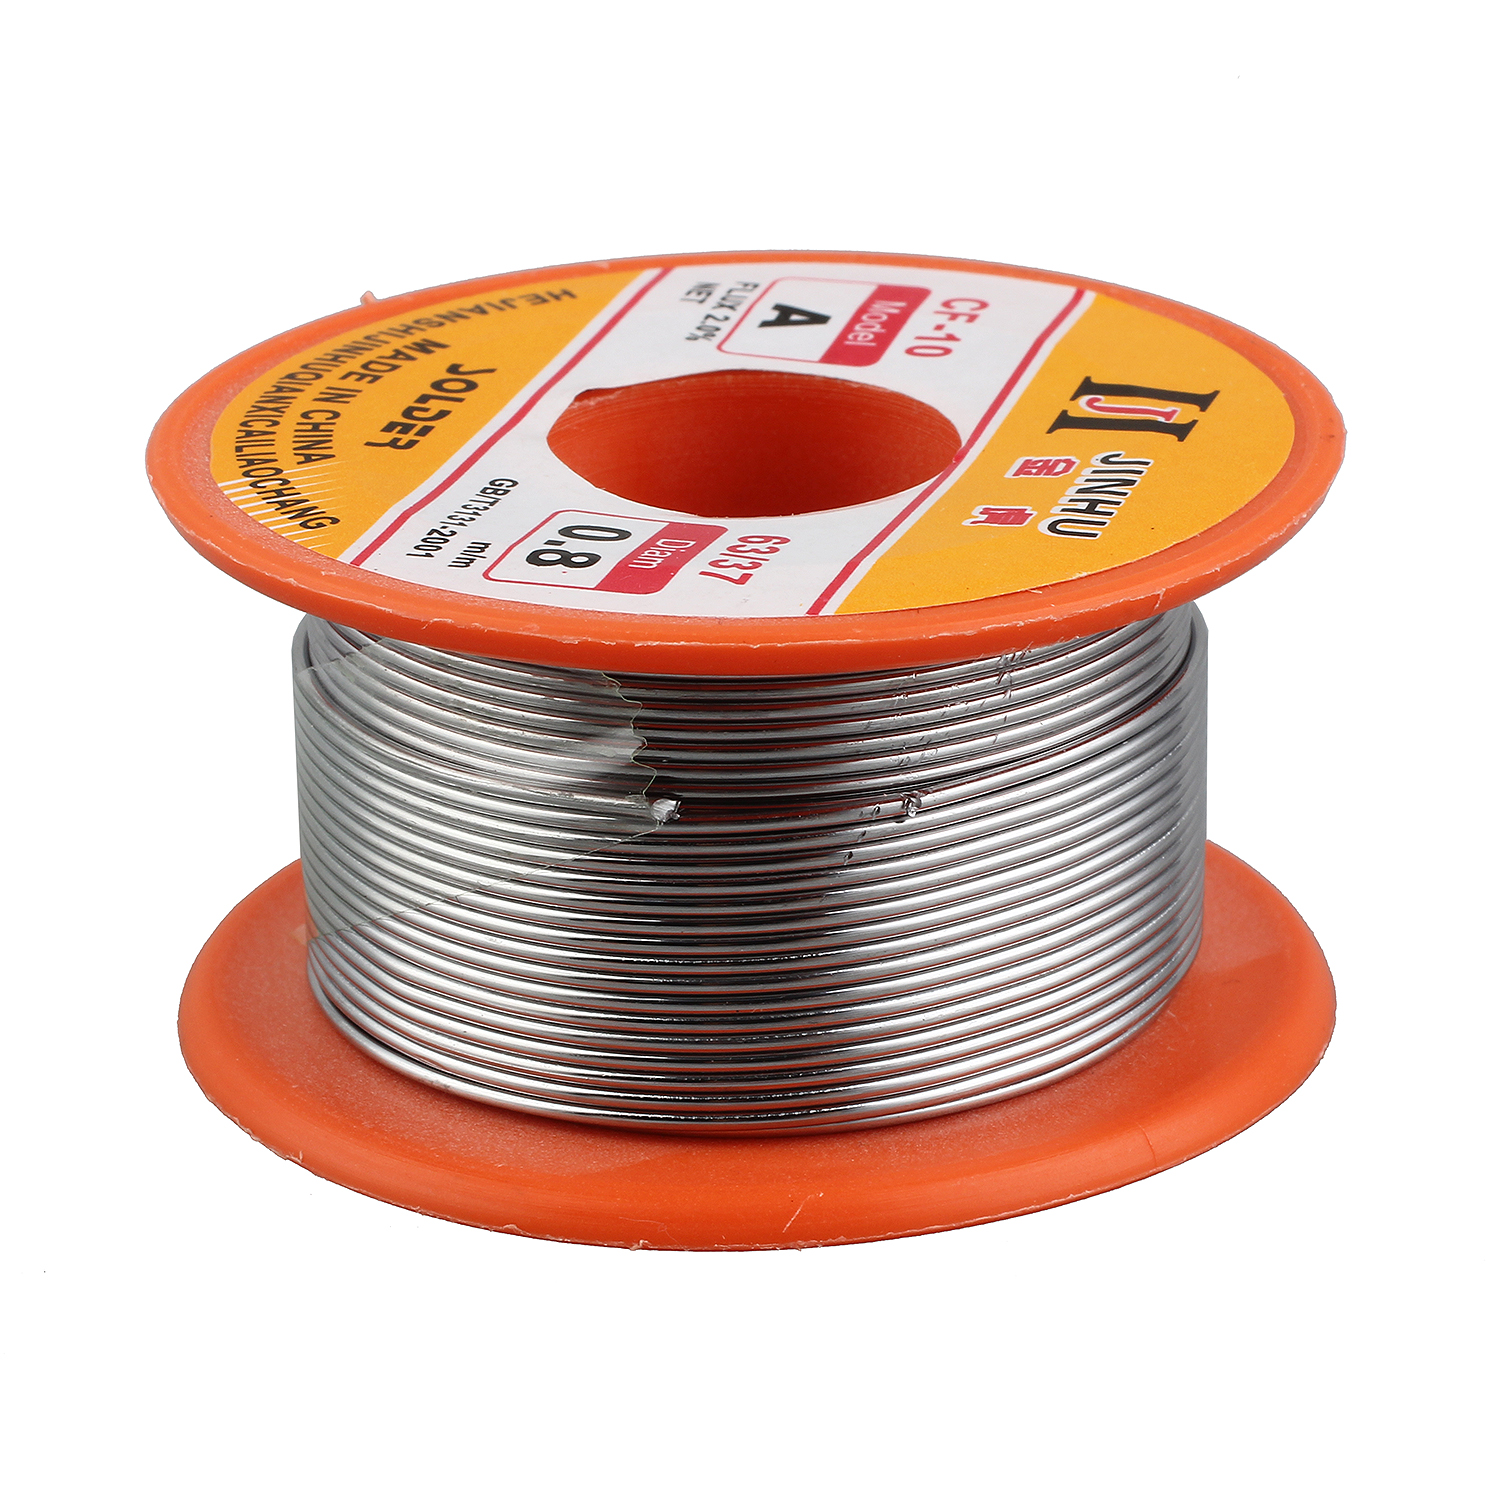 Pro 50g 63-37 Tin Lead Rosin Core Solder Wire for Electrical Solderding 0.8mm